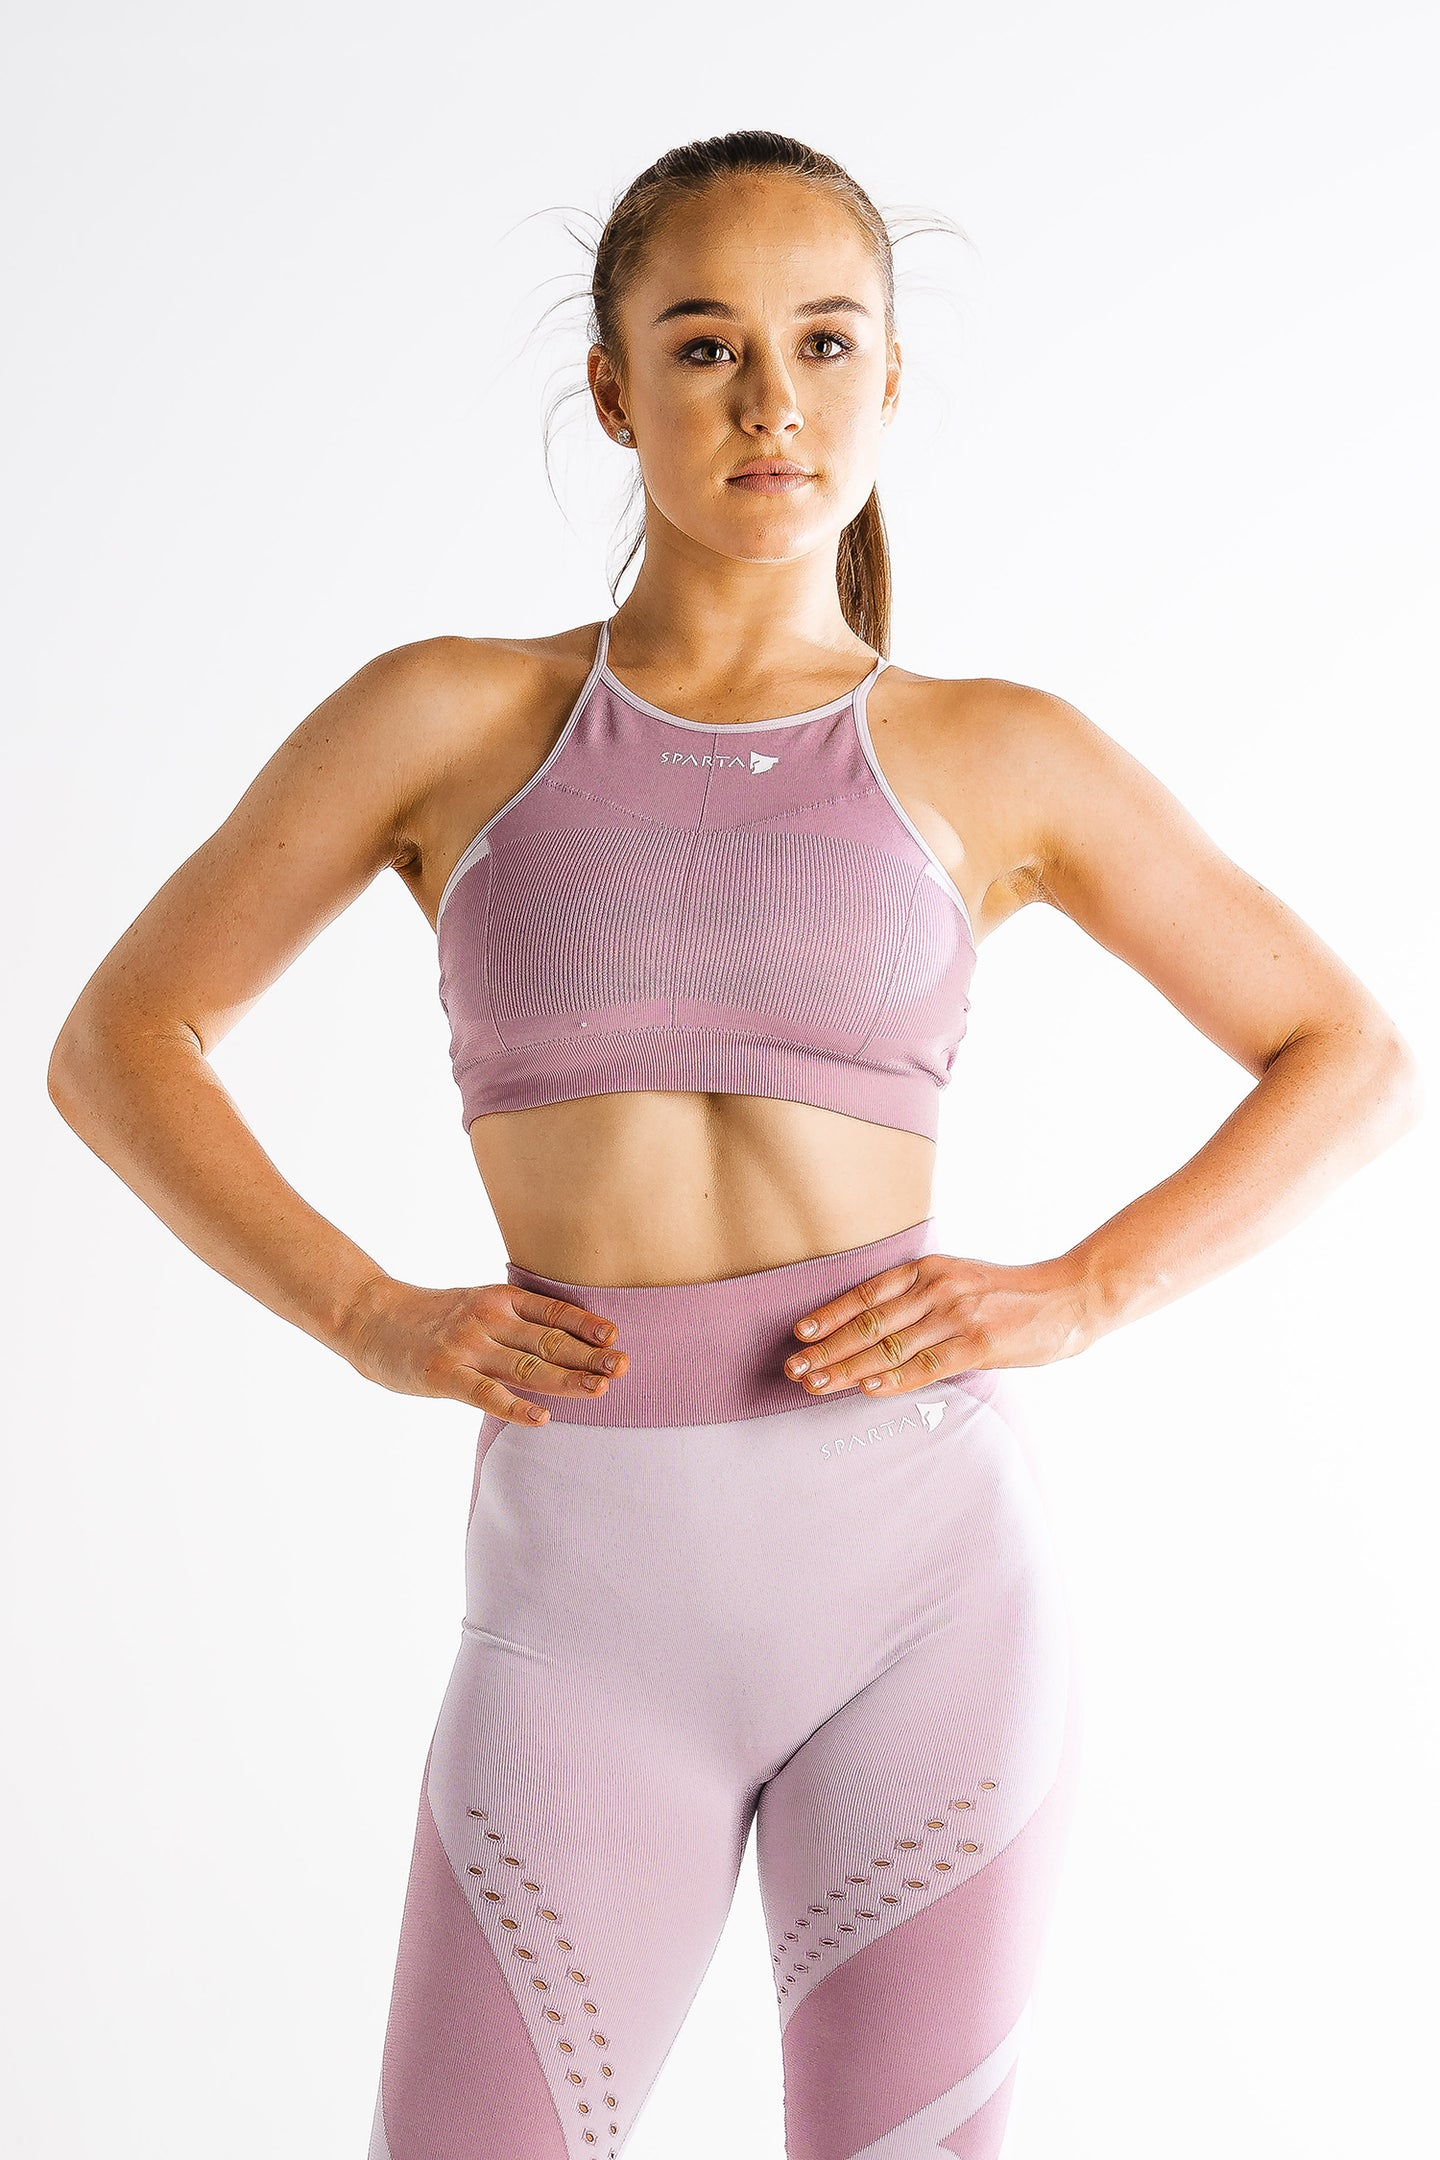 Sparta Laconic Seamless Sports Bra - Shadow Rose - Sparta Gym Wear